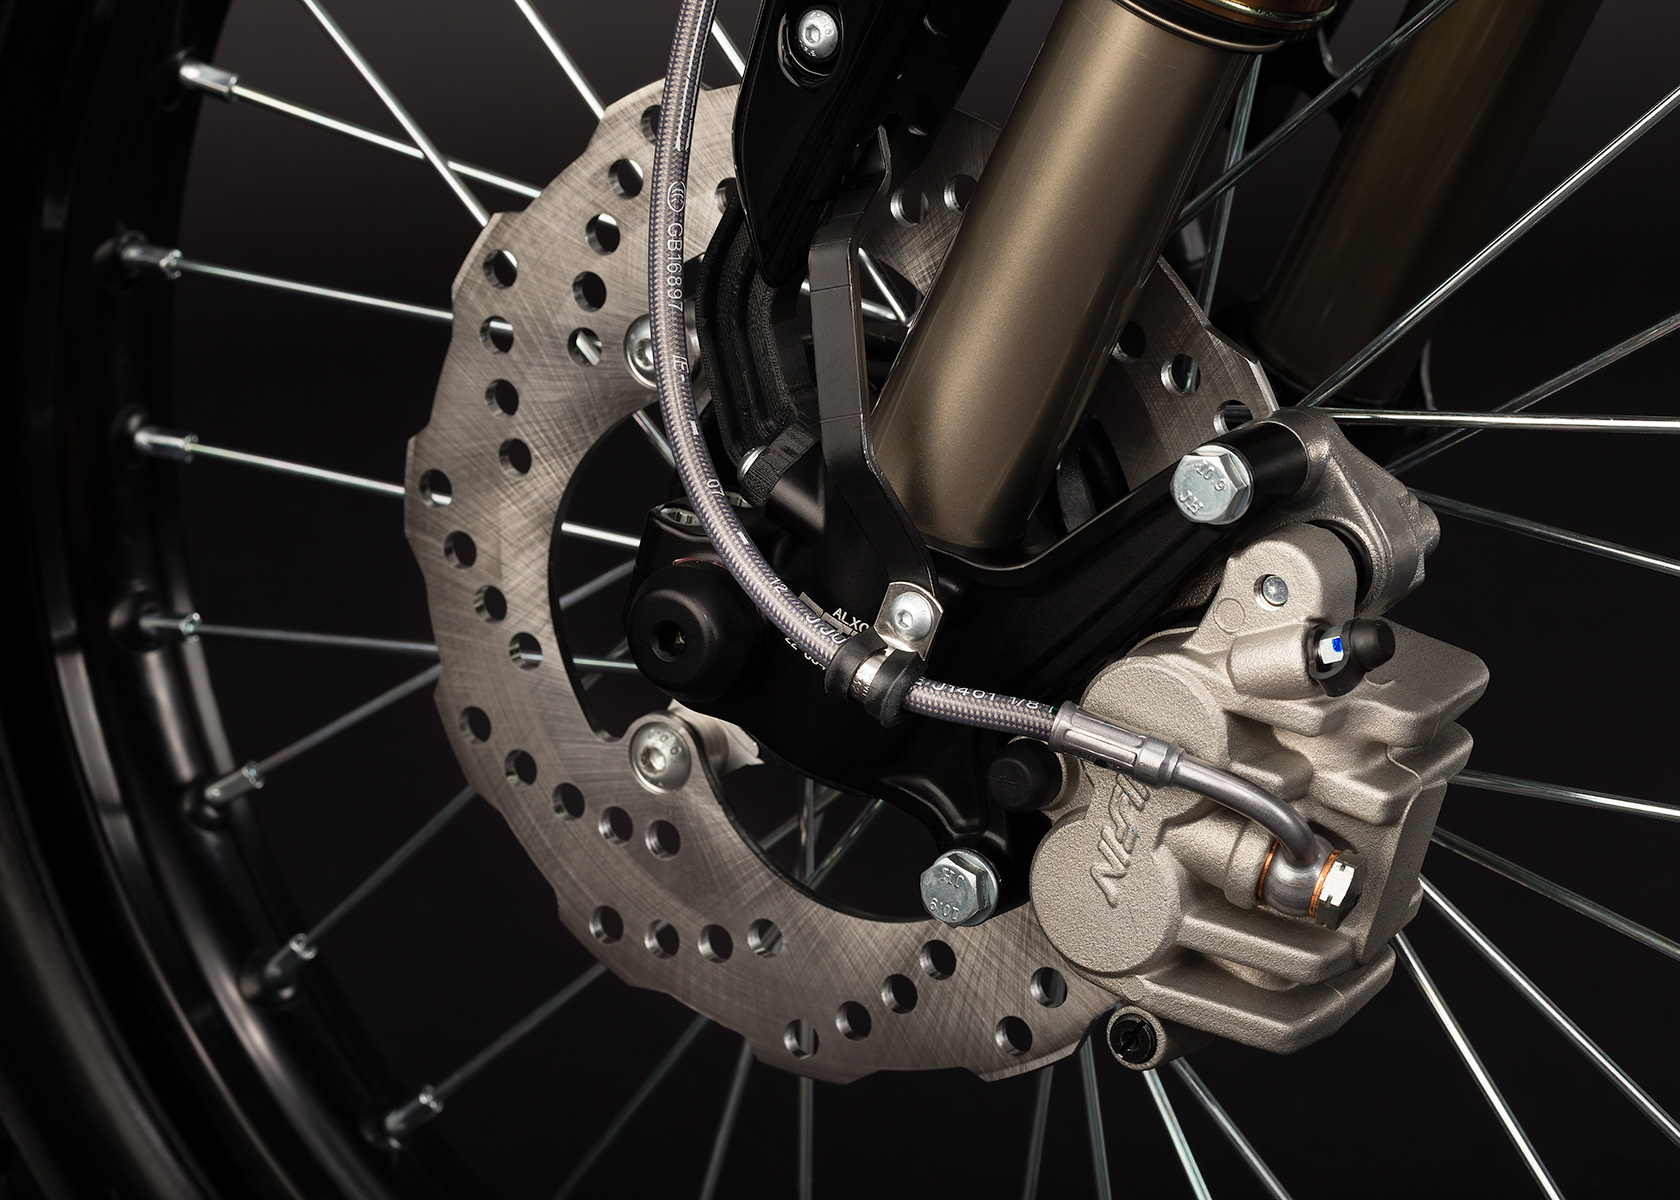 2013 Zero XU Electric Motorcycle: Front Brake